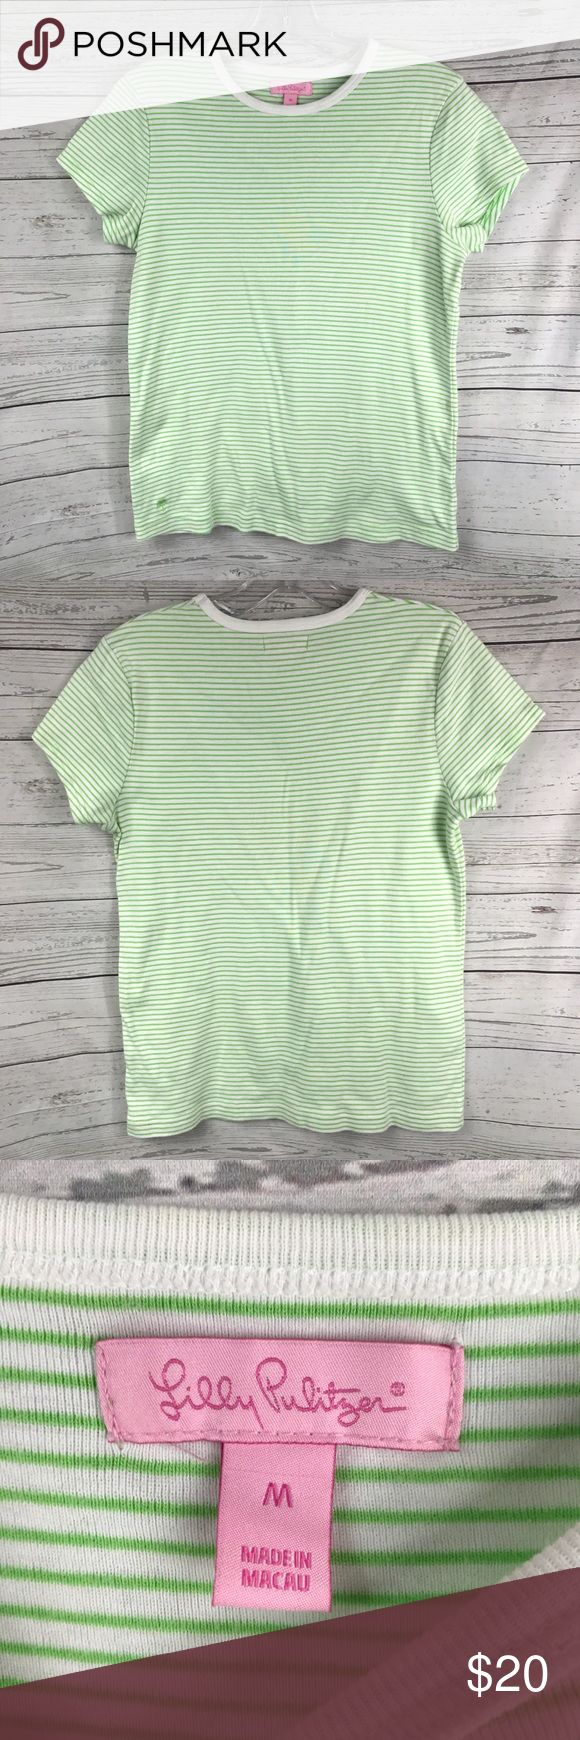 "Lilly Pulitzer striped short sleeve top Size medium. Armpit to armpit: 18"". There is a tiny little stain, but other than that it is in great condition. See pictures for details. Lilly Pulitzer Tops Tees - Short Sleeve"